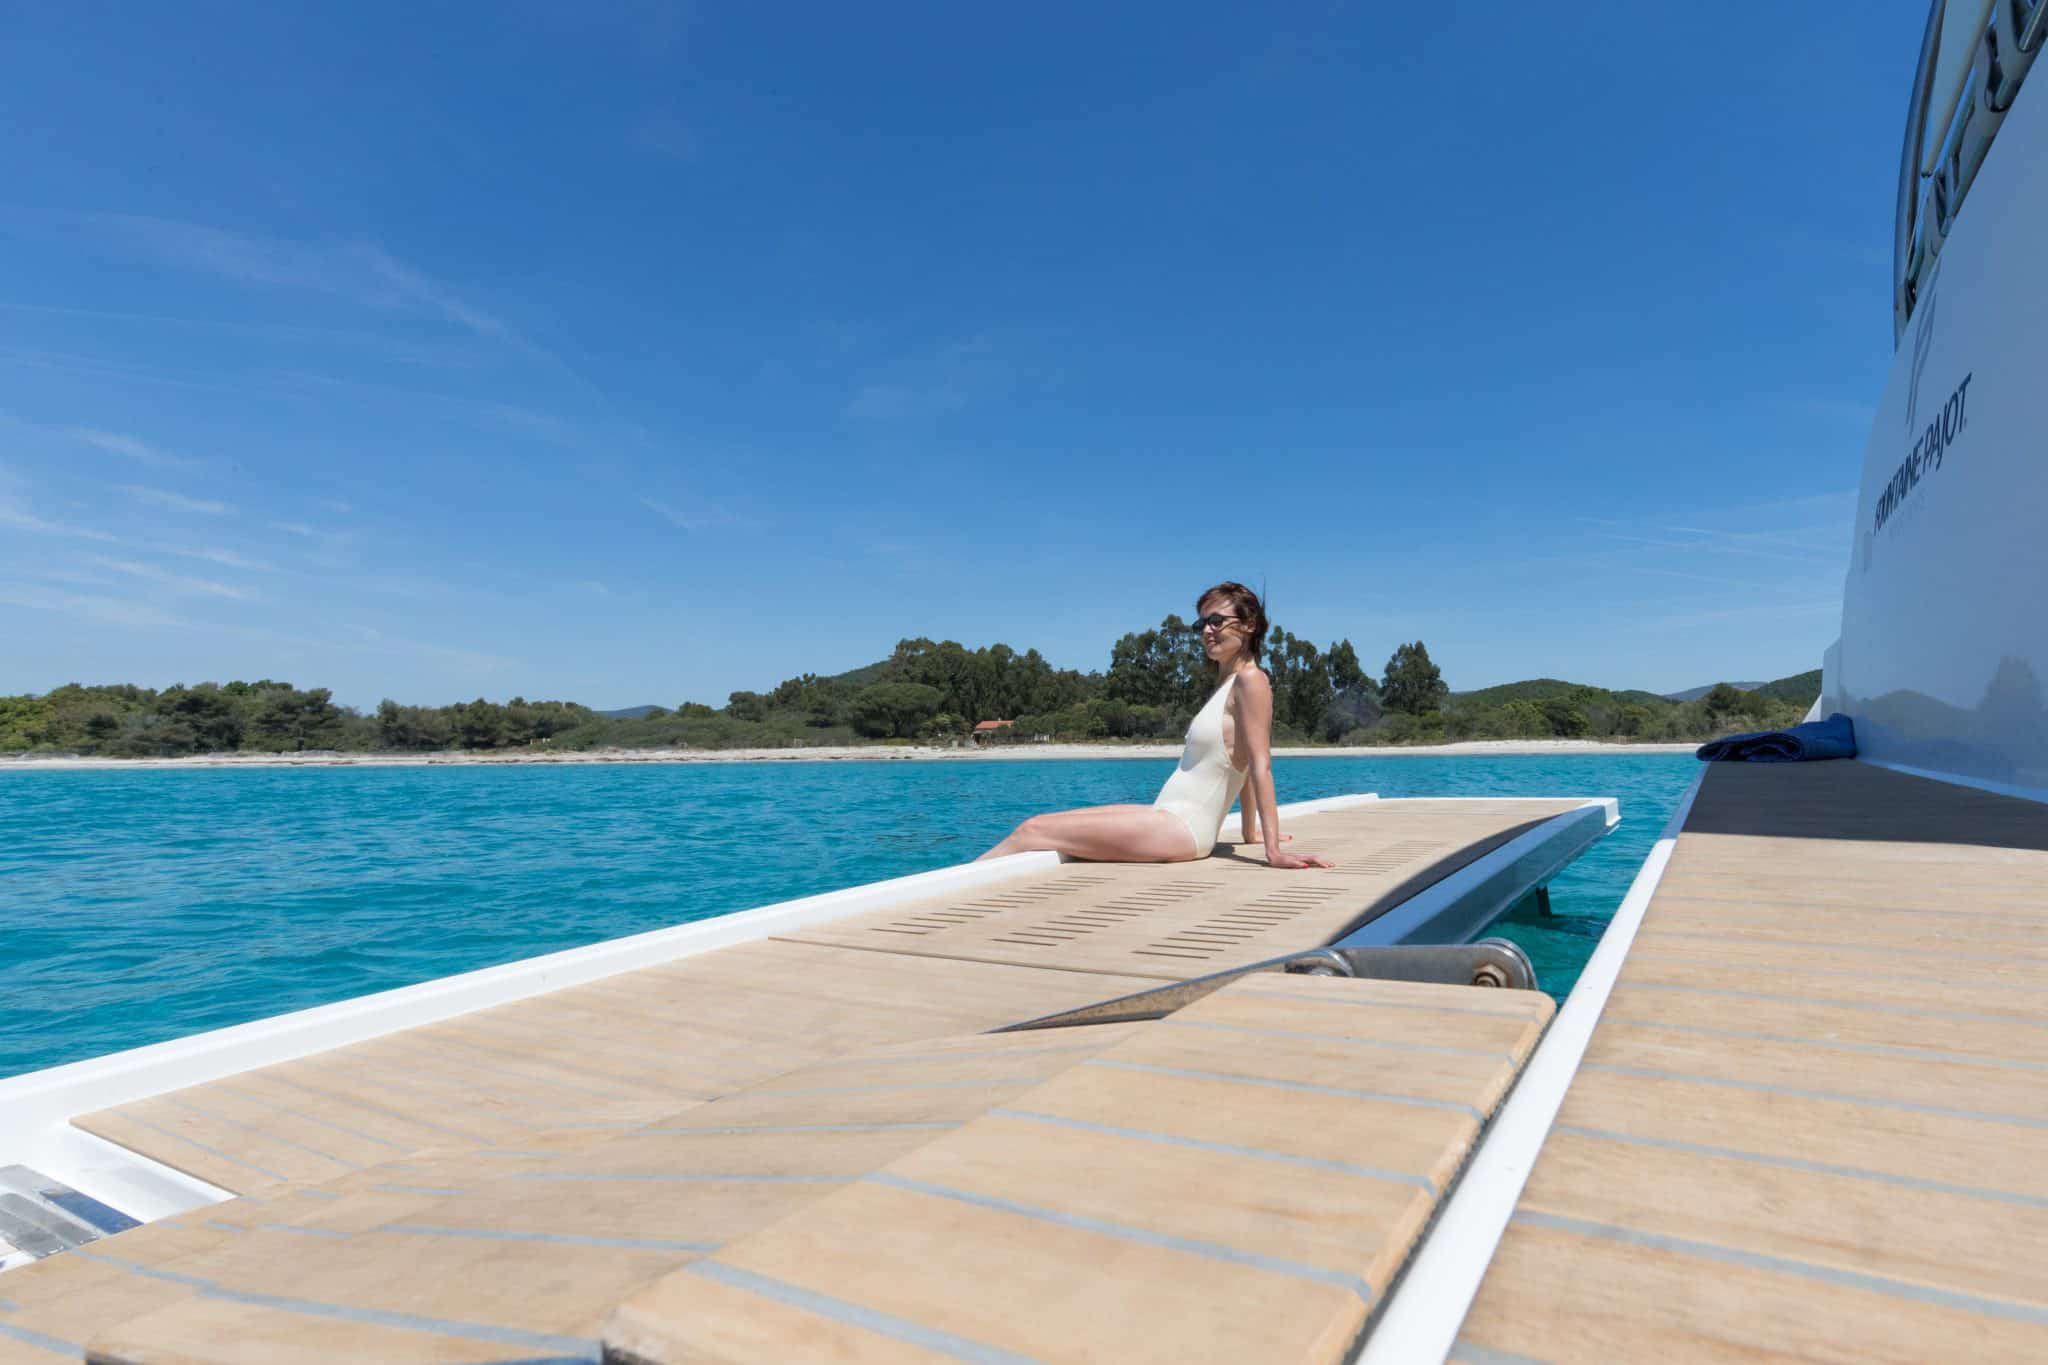 A woman relaxing on the bow of a yacht